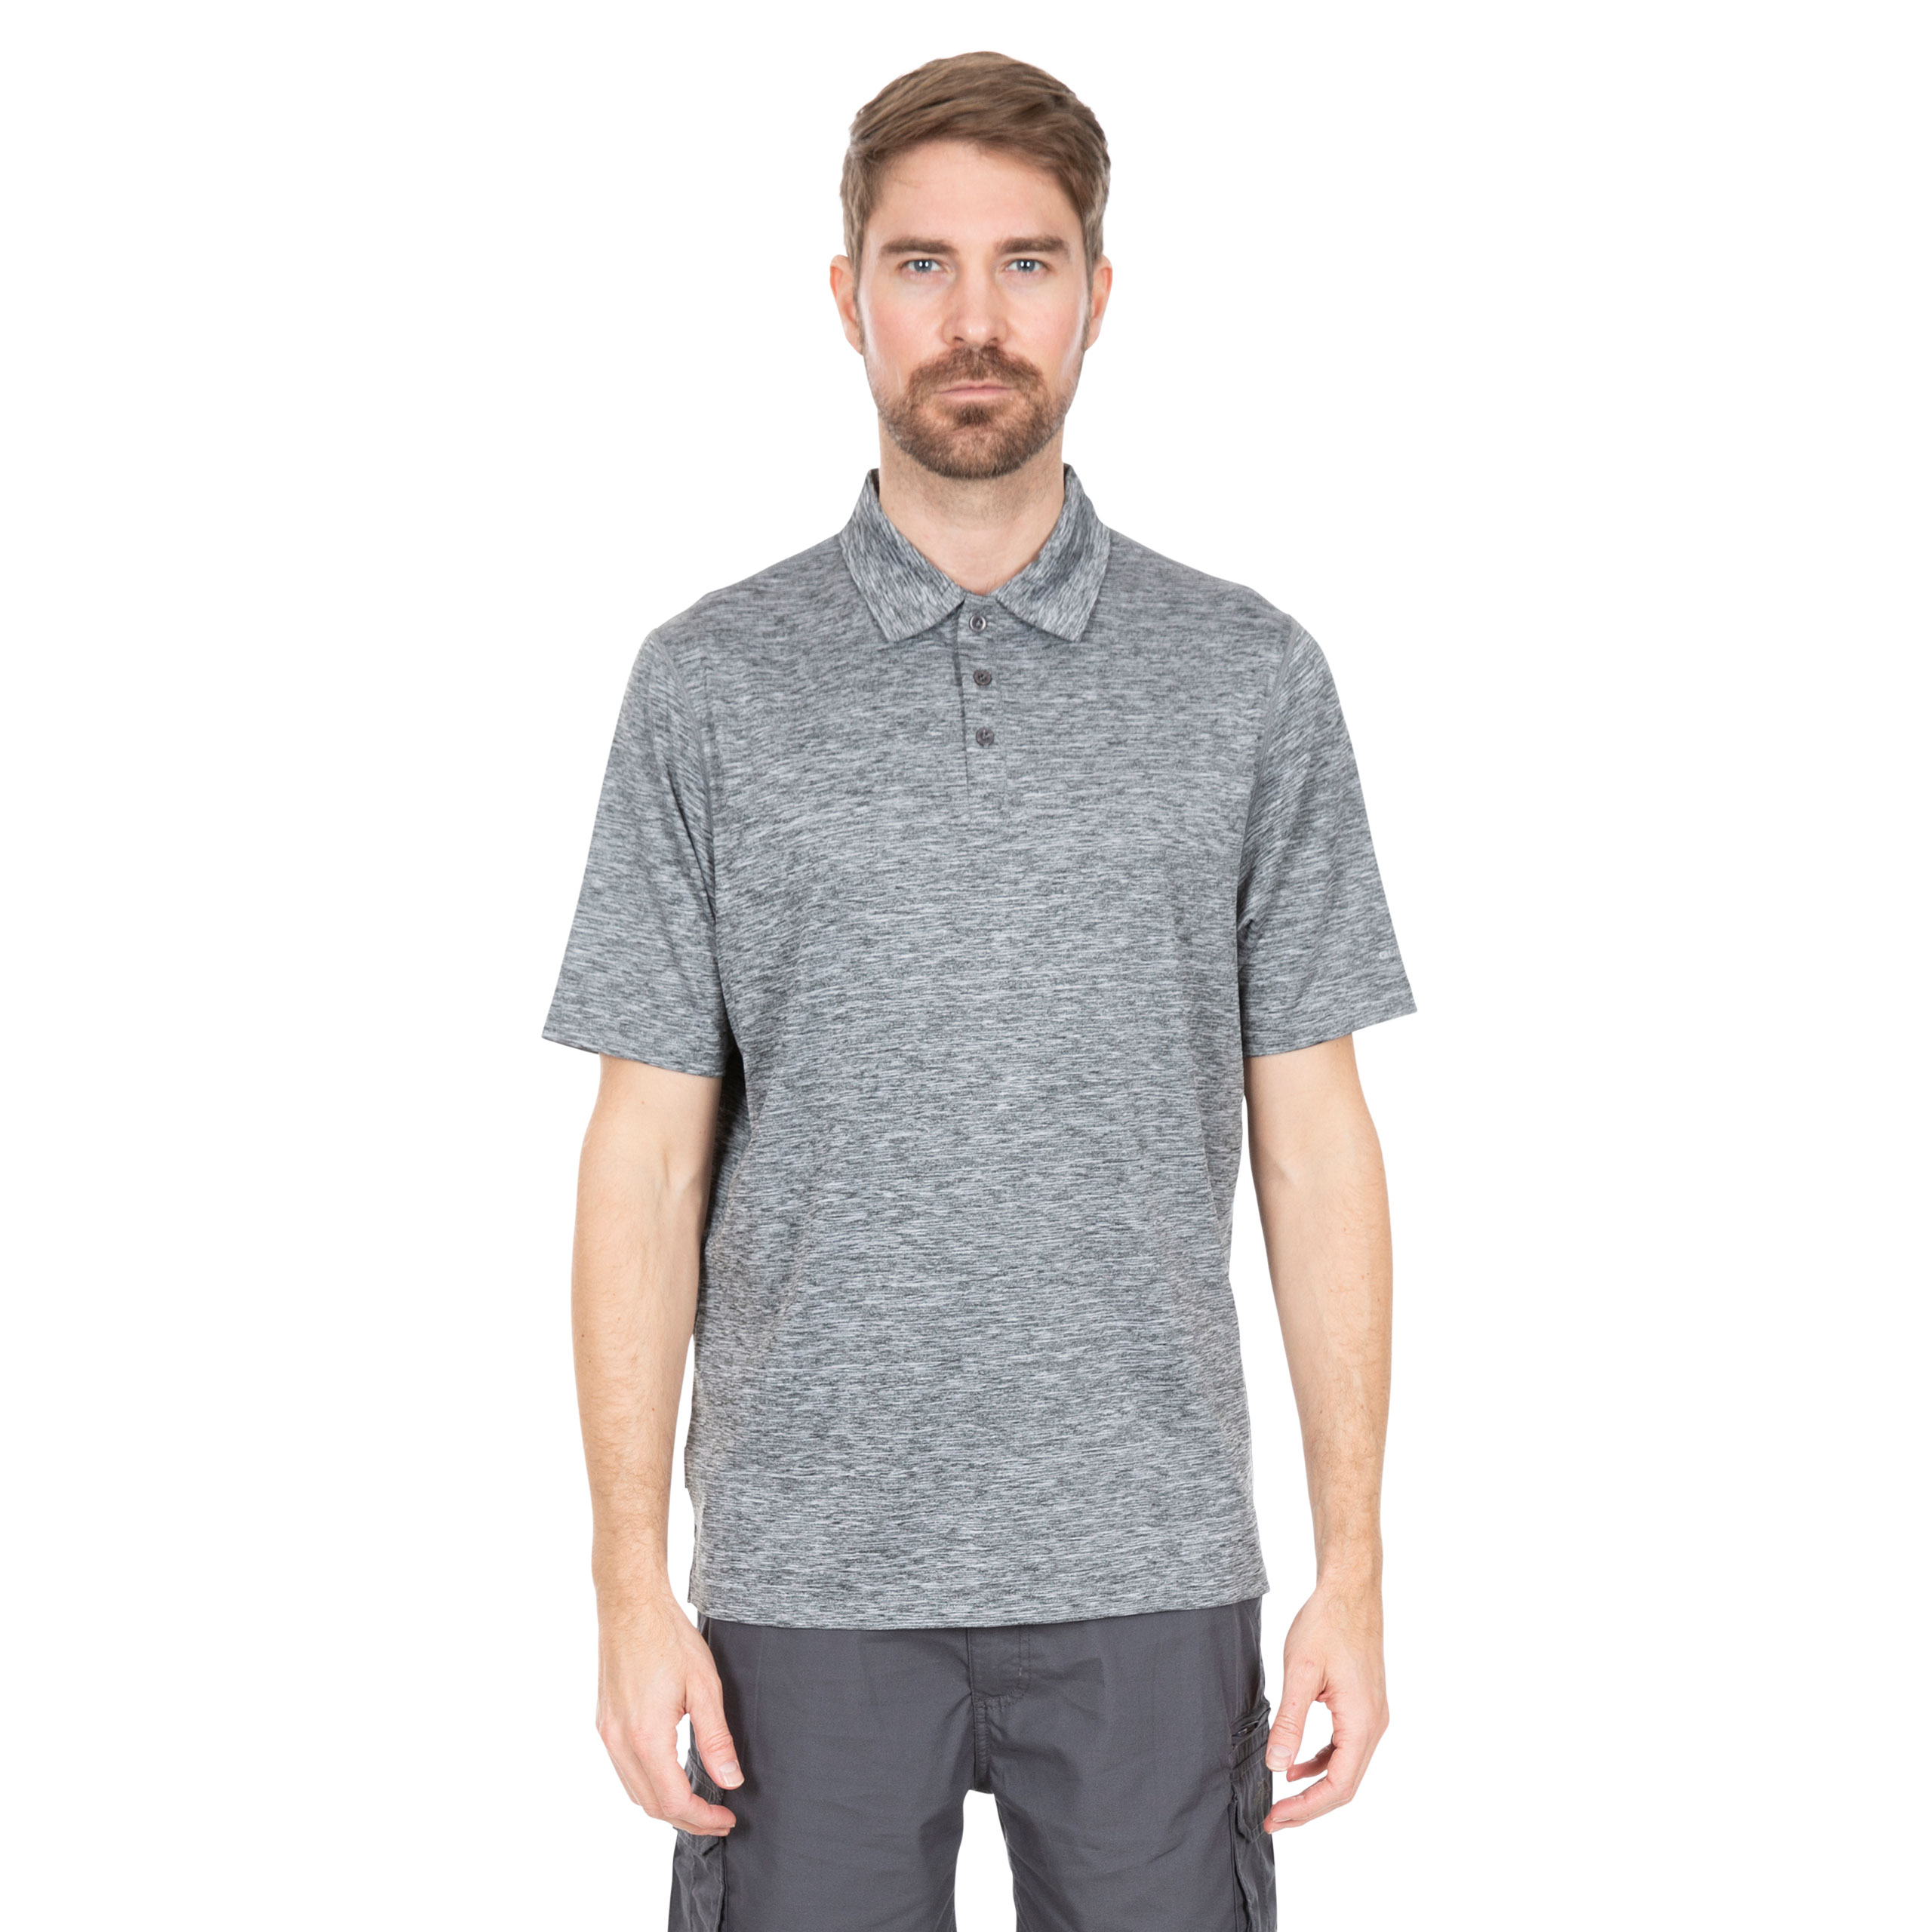 Trespass-Monocle-Mens-Polo-Top-Casual-Gym-T-shirt-in-Grey-amp-Navy thumbnail 14